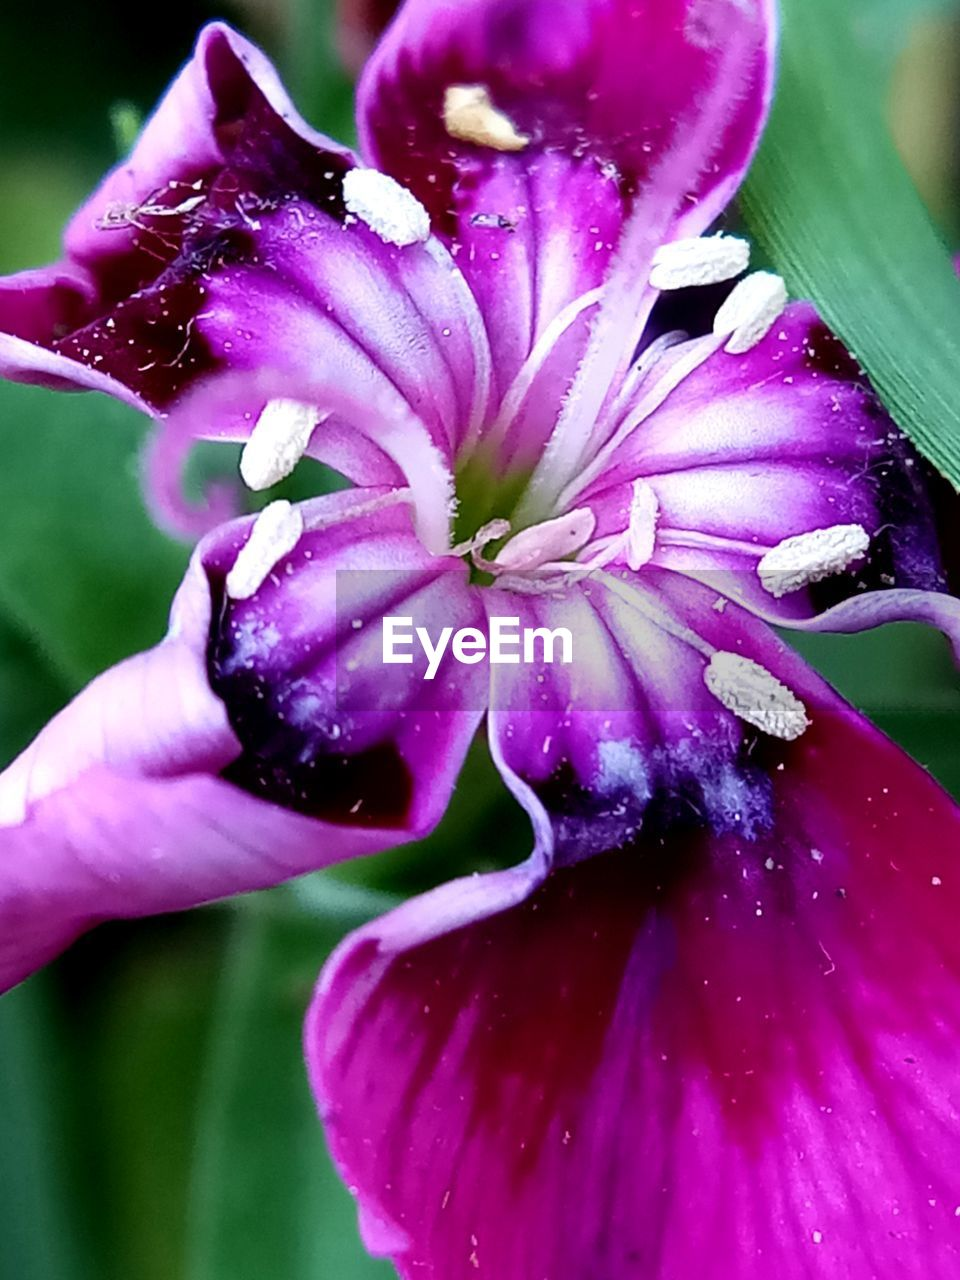 flower, petal, fragility, freshness, beauty in nature, flower head, nature, growth, purple, plant, outdoors, close-up, drop, day, wet, blooming, water, pink color, no people, petunia, passion flower